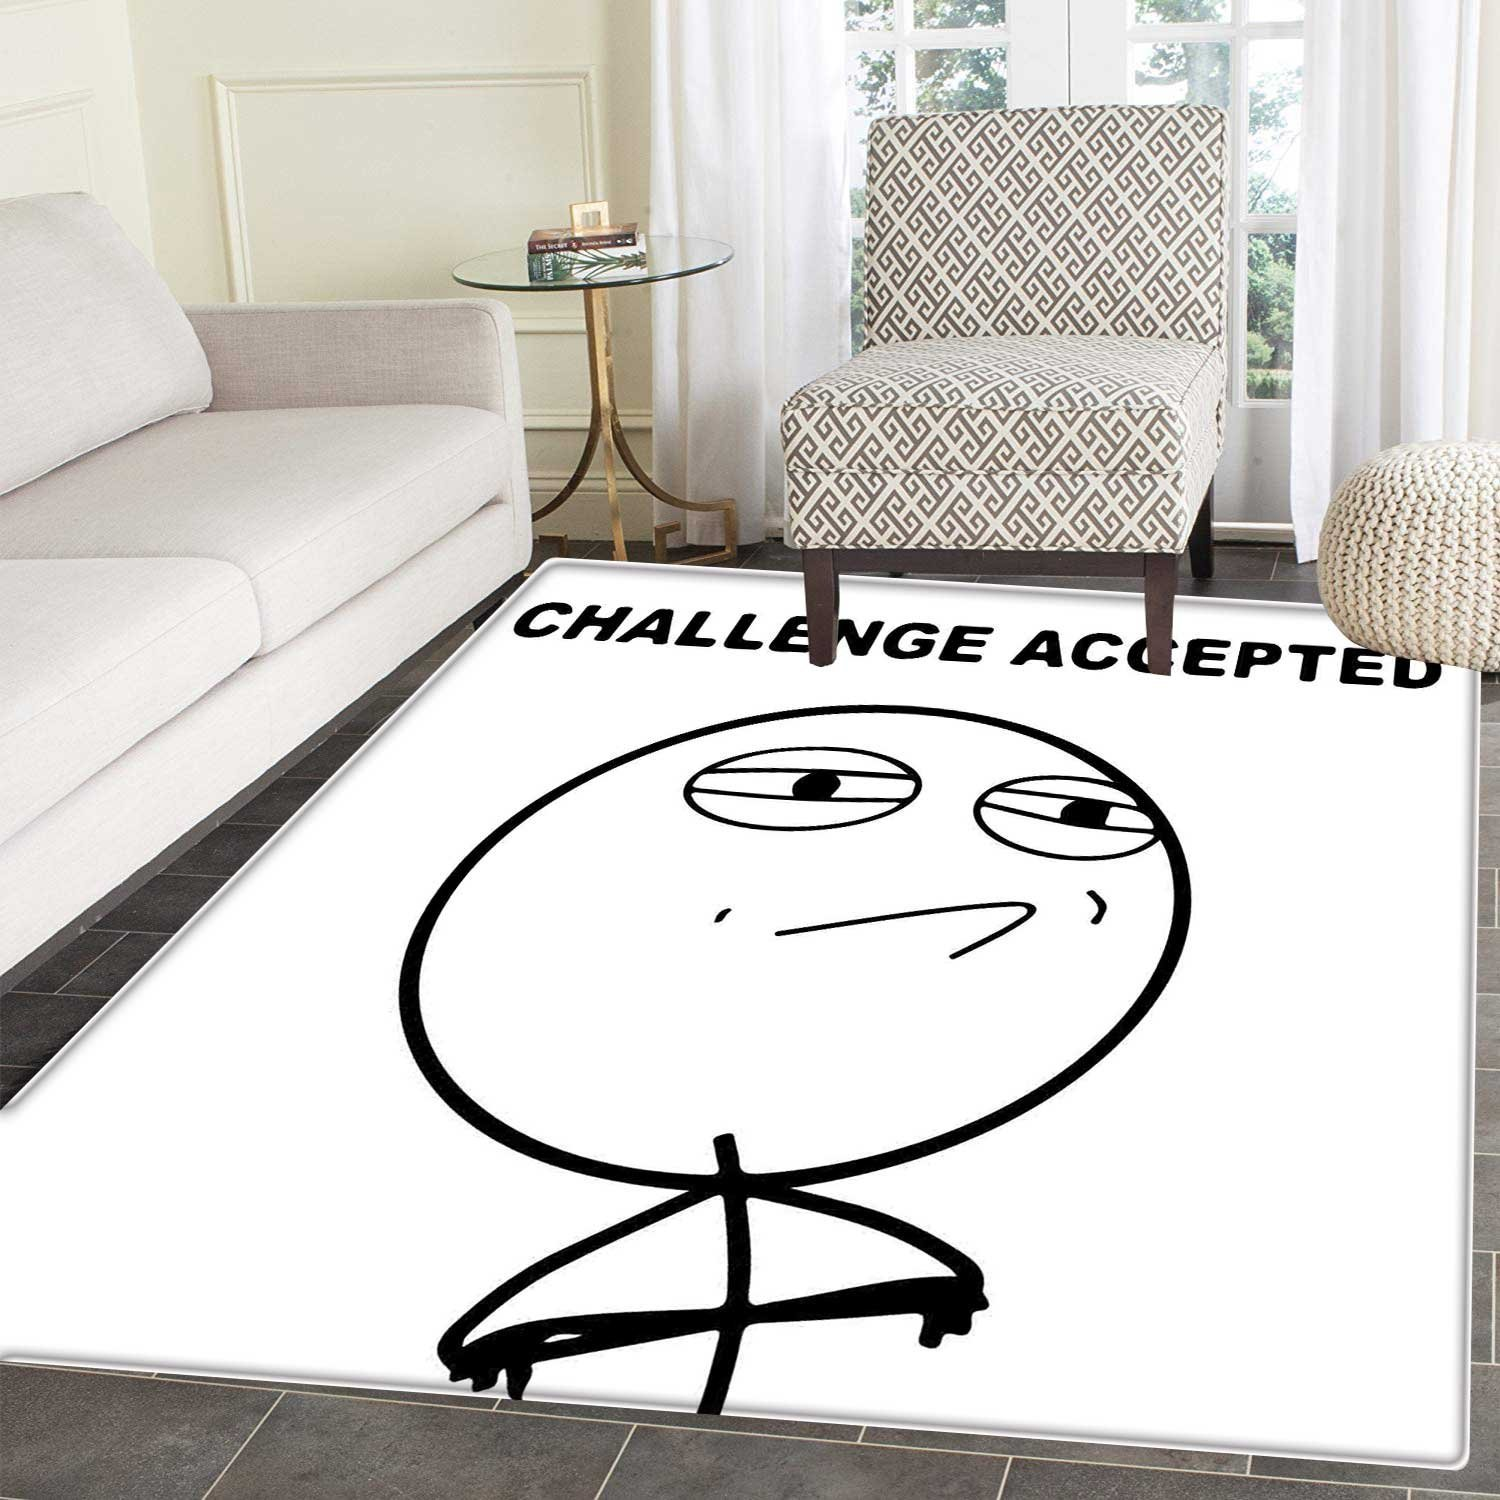 Fantastic Humor Rugs For Bedroom Challenge Accepted Guy Meme Caricature Man Trippy Styled Artsy Modern Picture Circle Rugs For Living Room 4X5 Black And White Bralicious Painted Fabric Chair Ideas Braliciousco